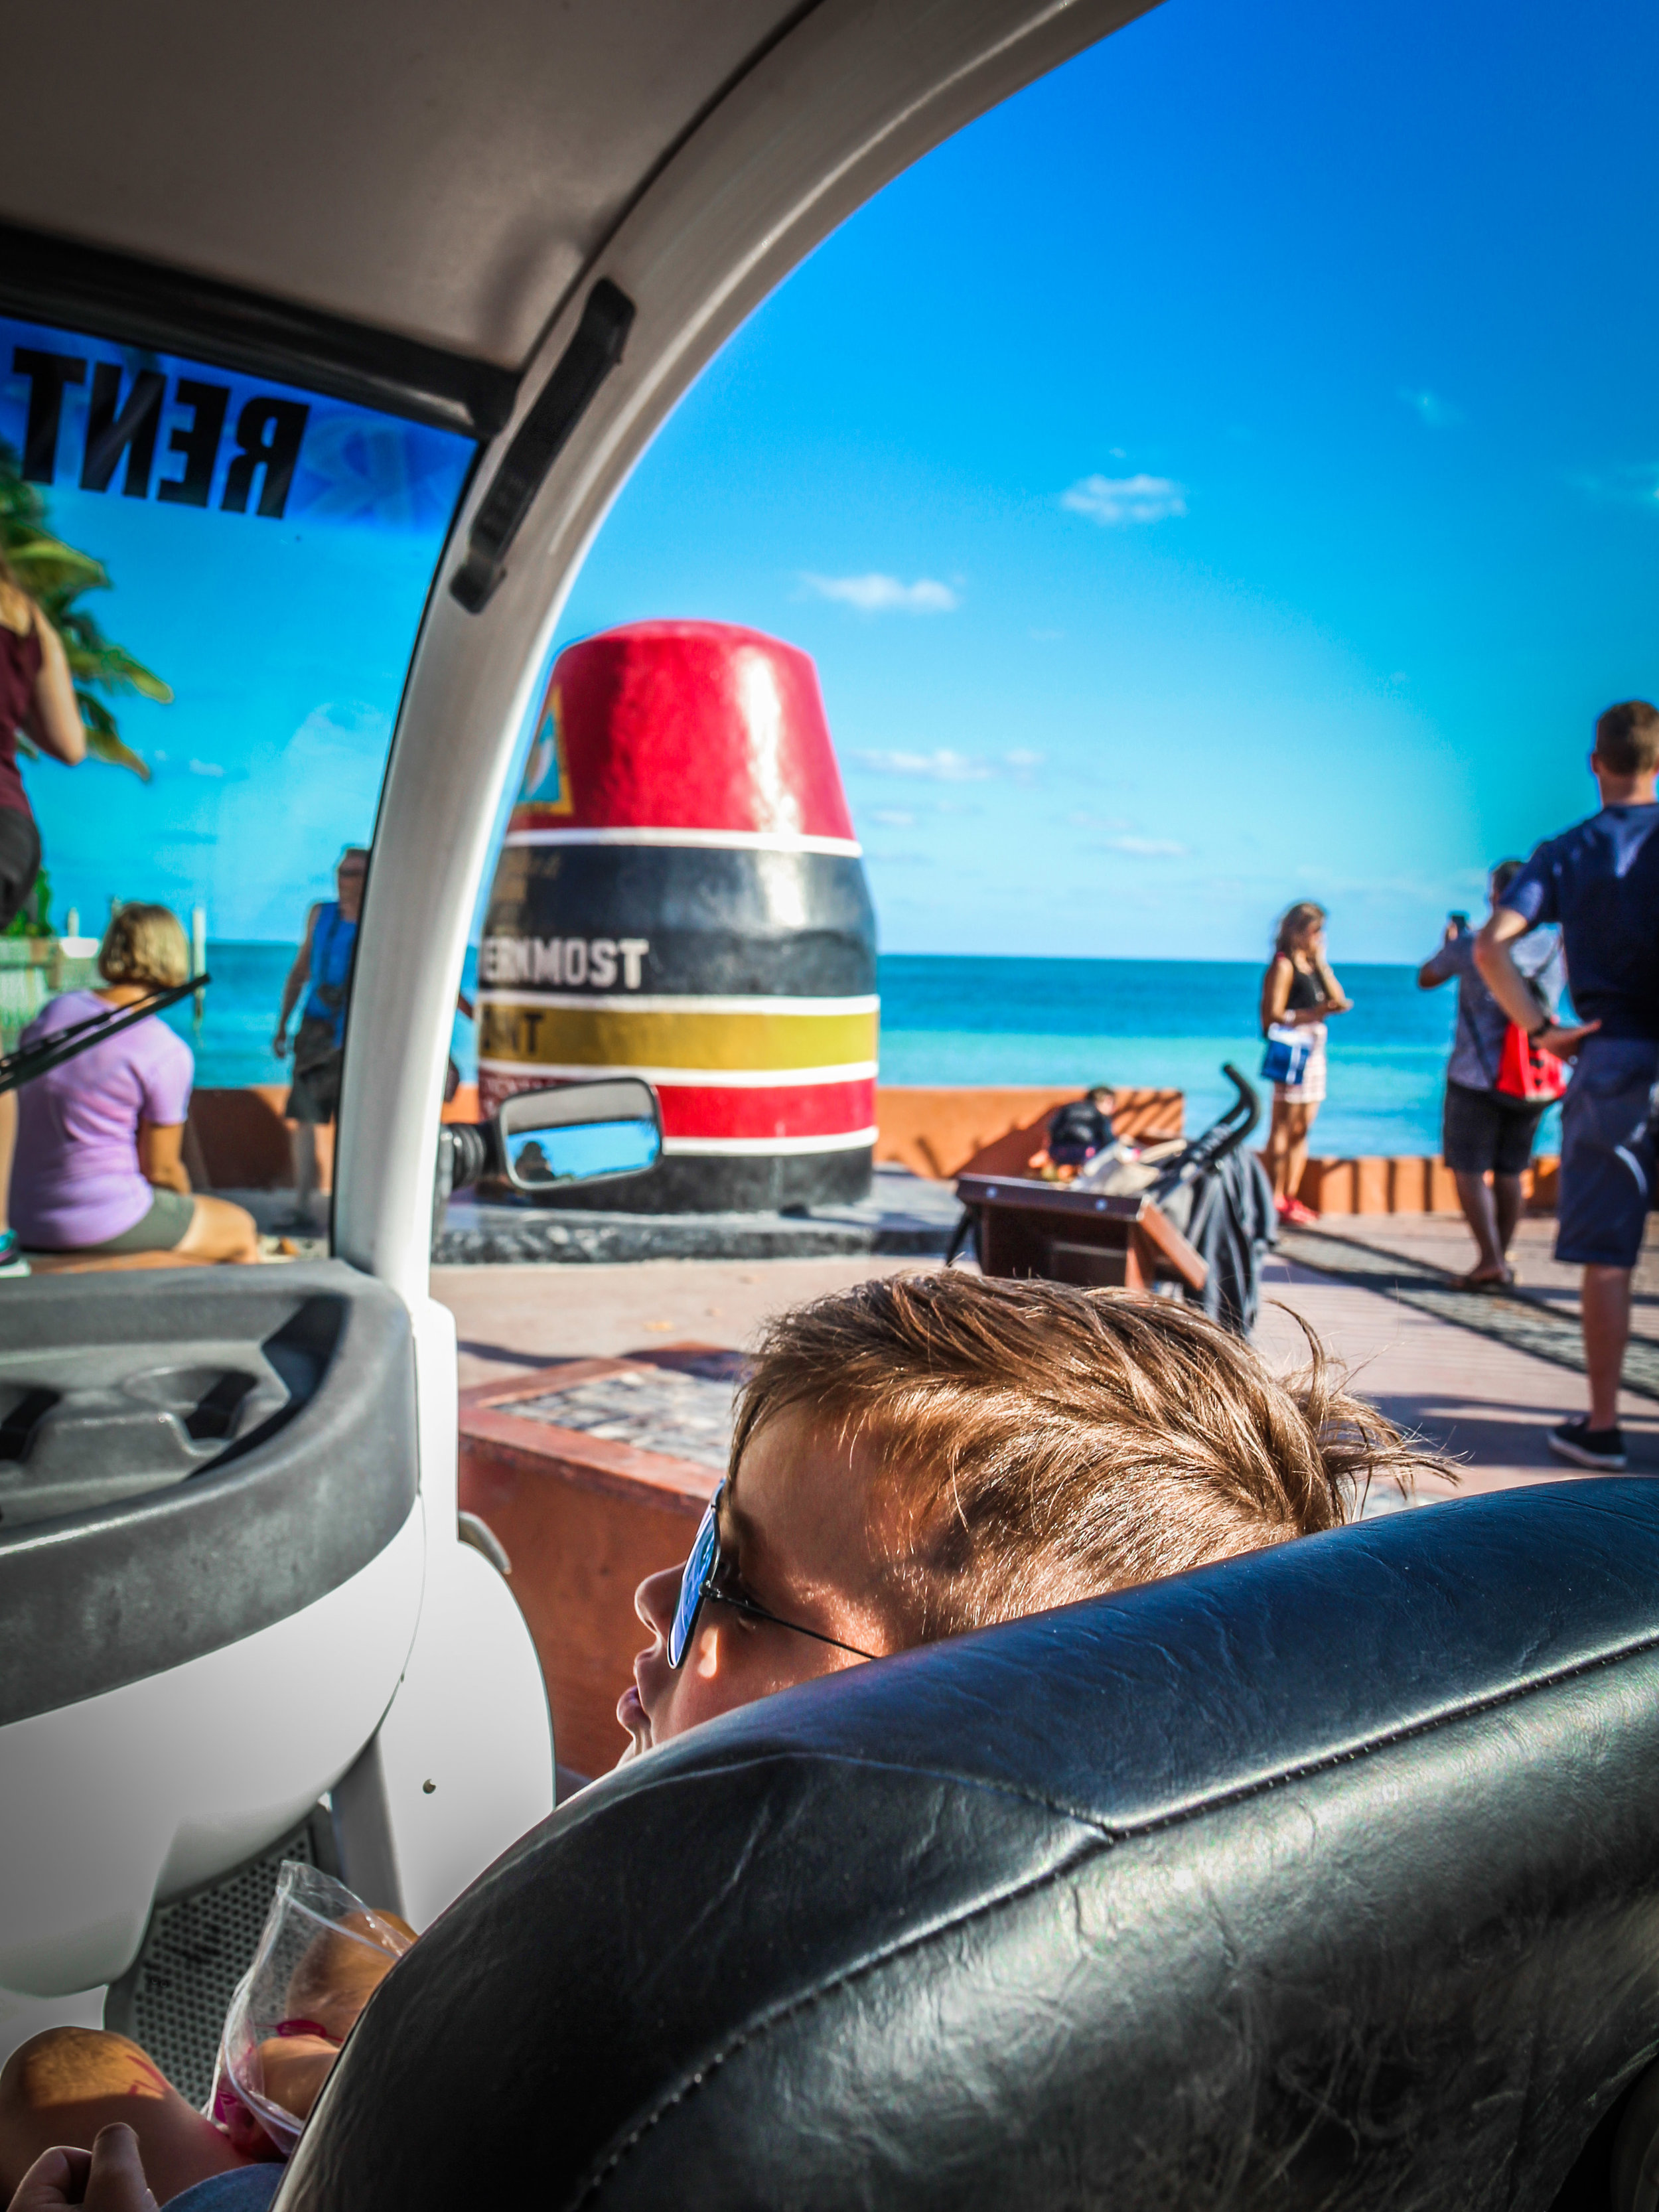 Florida_keys-_Key_west_To_do_reizen_met_kinderen-27.jpg